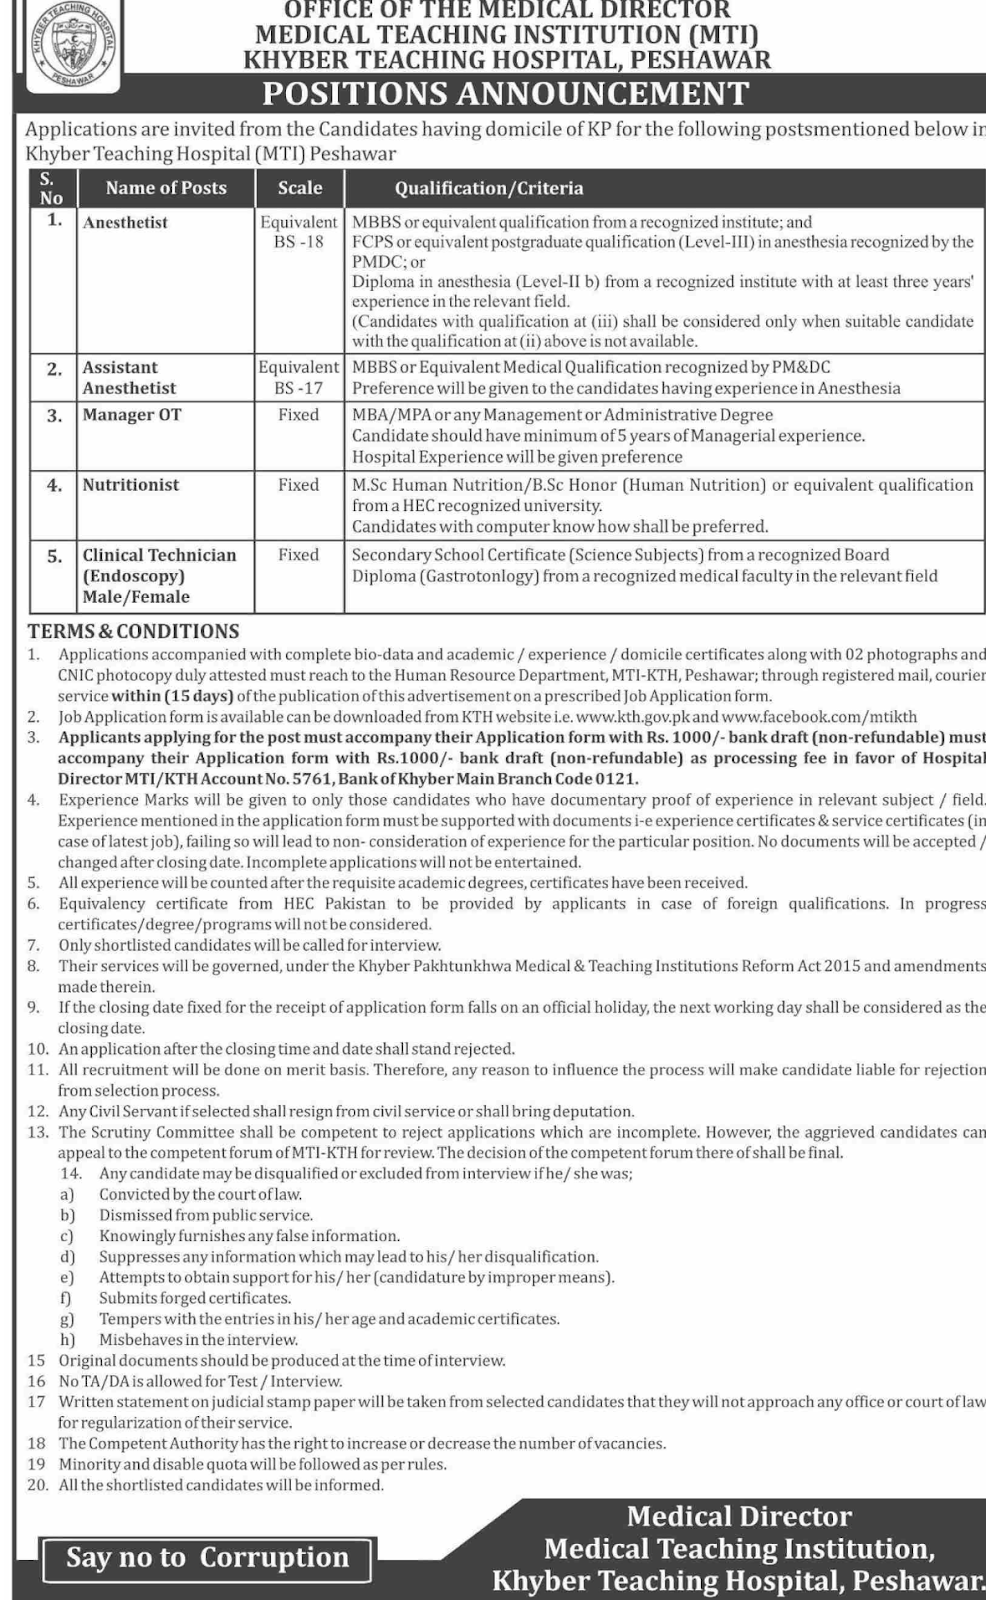 Jobs in Khyber Teaching Hospital MTI Peshawar 2020